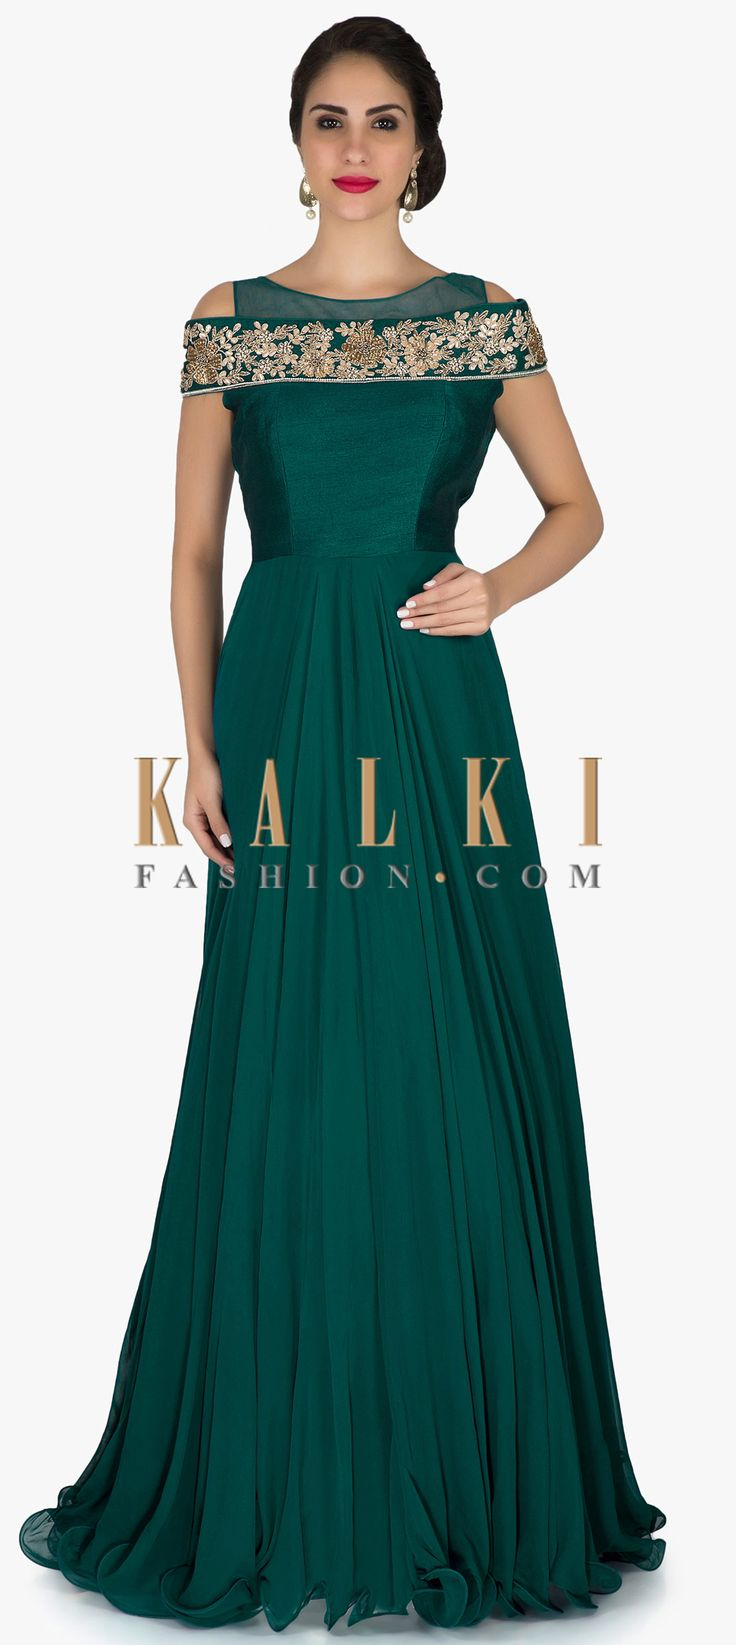 Teal green anarkali suit in cold shoulder with zardosi and gotta patch embroidery only on Kalki